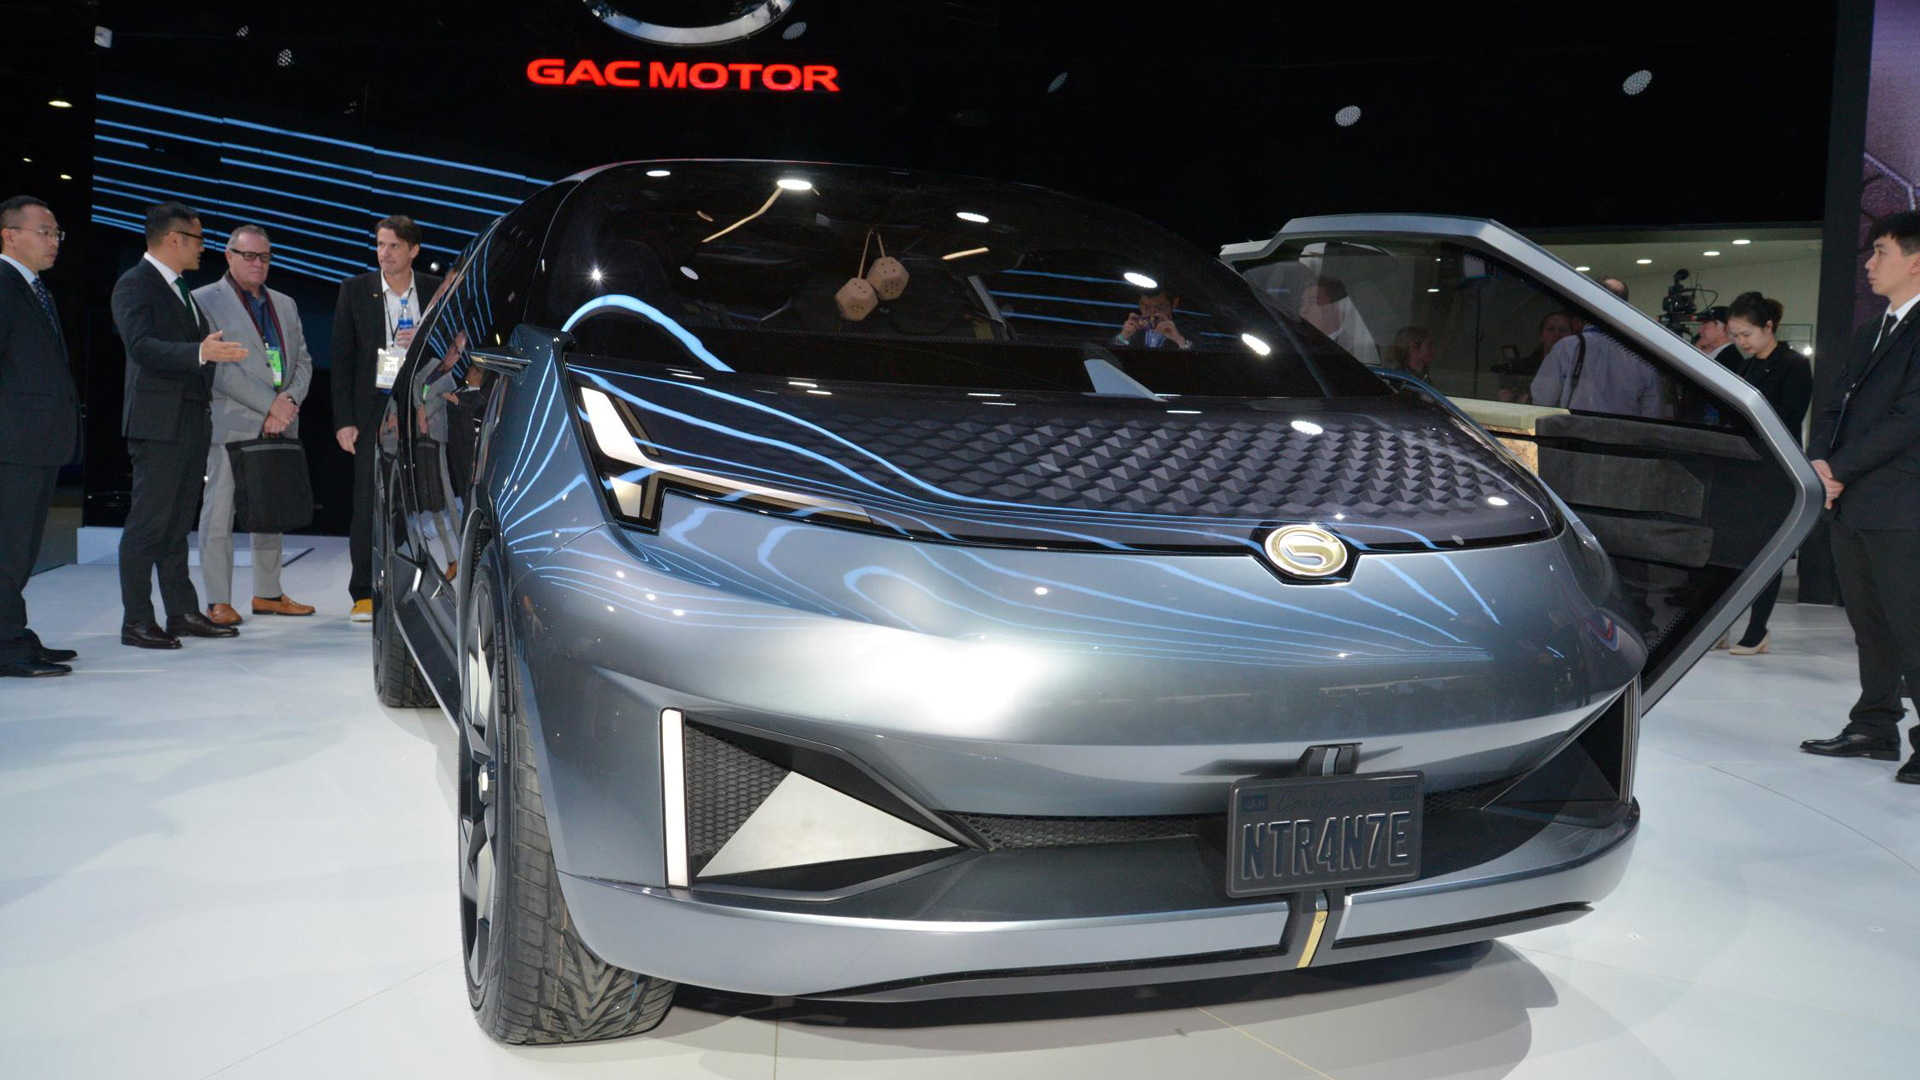 2020 Detroit Auto Show.Gac Returns To Detroit Auto Show With Entranze Concept